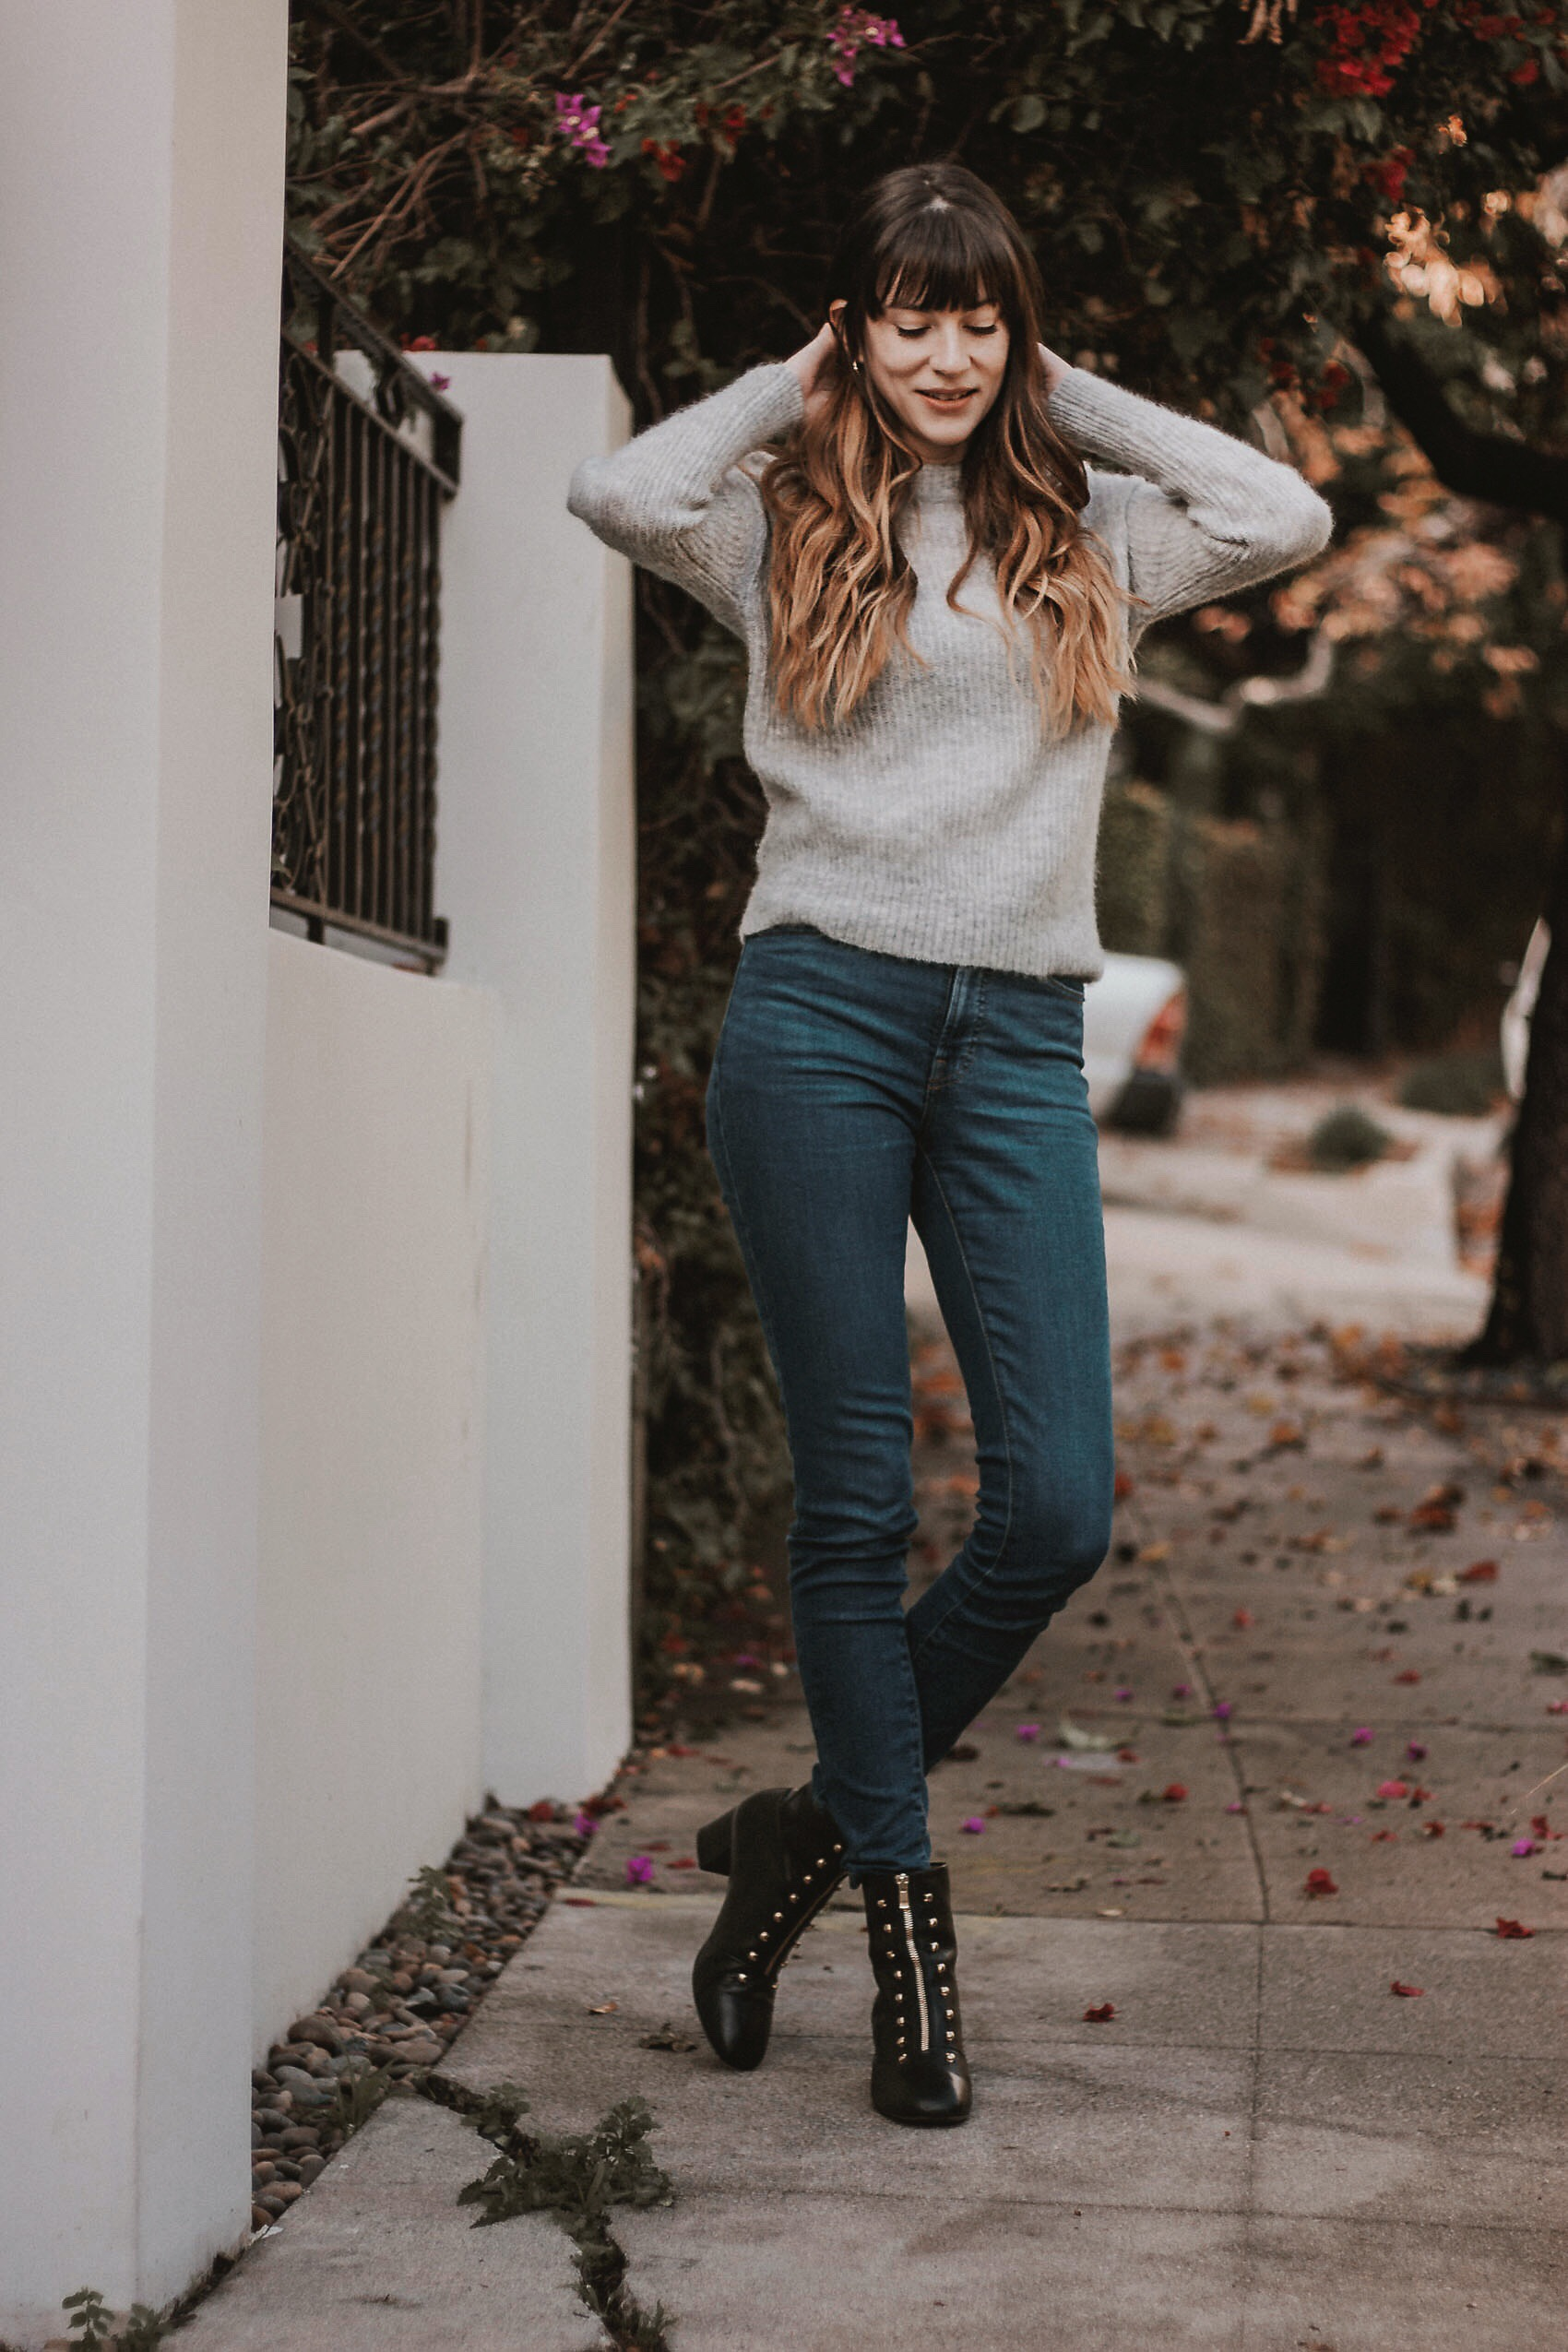 Grey Wool Sweater, Everlane Skinny Jeans, Black Leather Boots with Gold Hardware